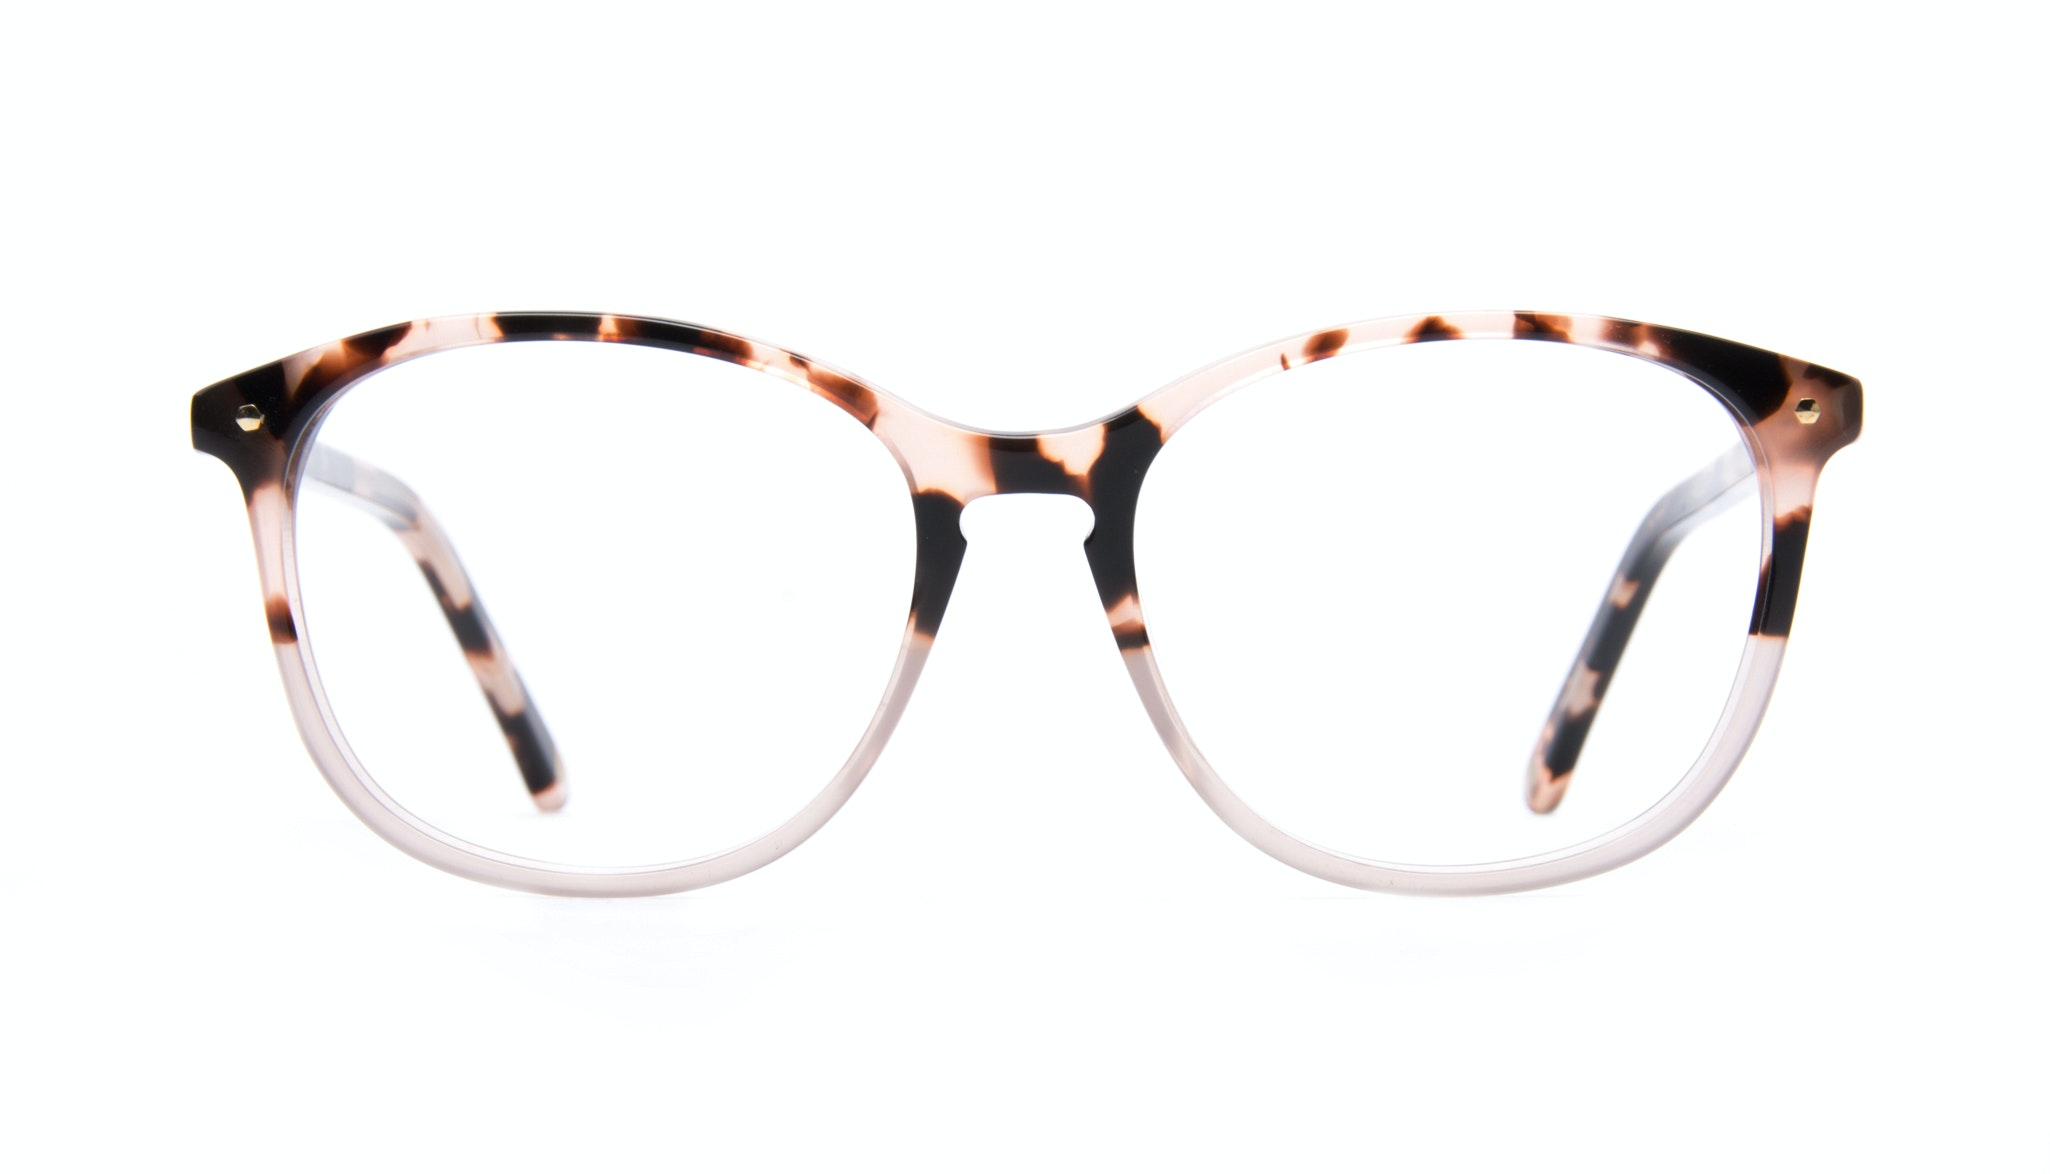 Affordable Fashion Glasses Rectangle Square Round Eyeglasses Women Nadine Two Tone Pink